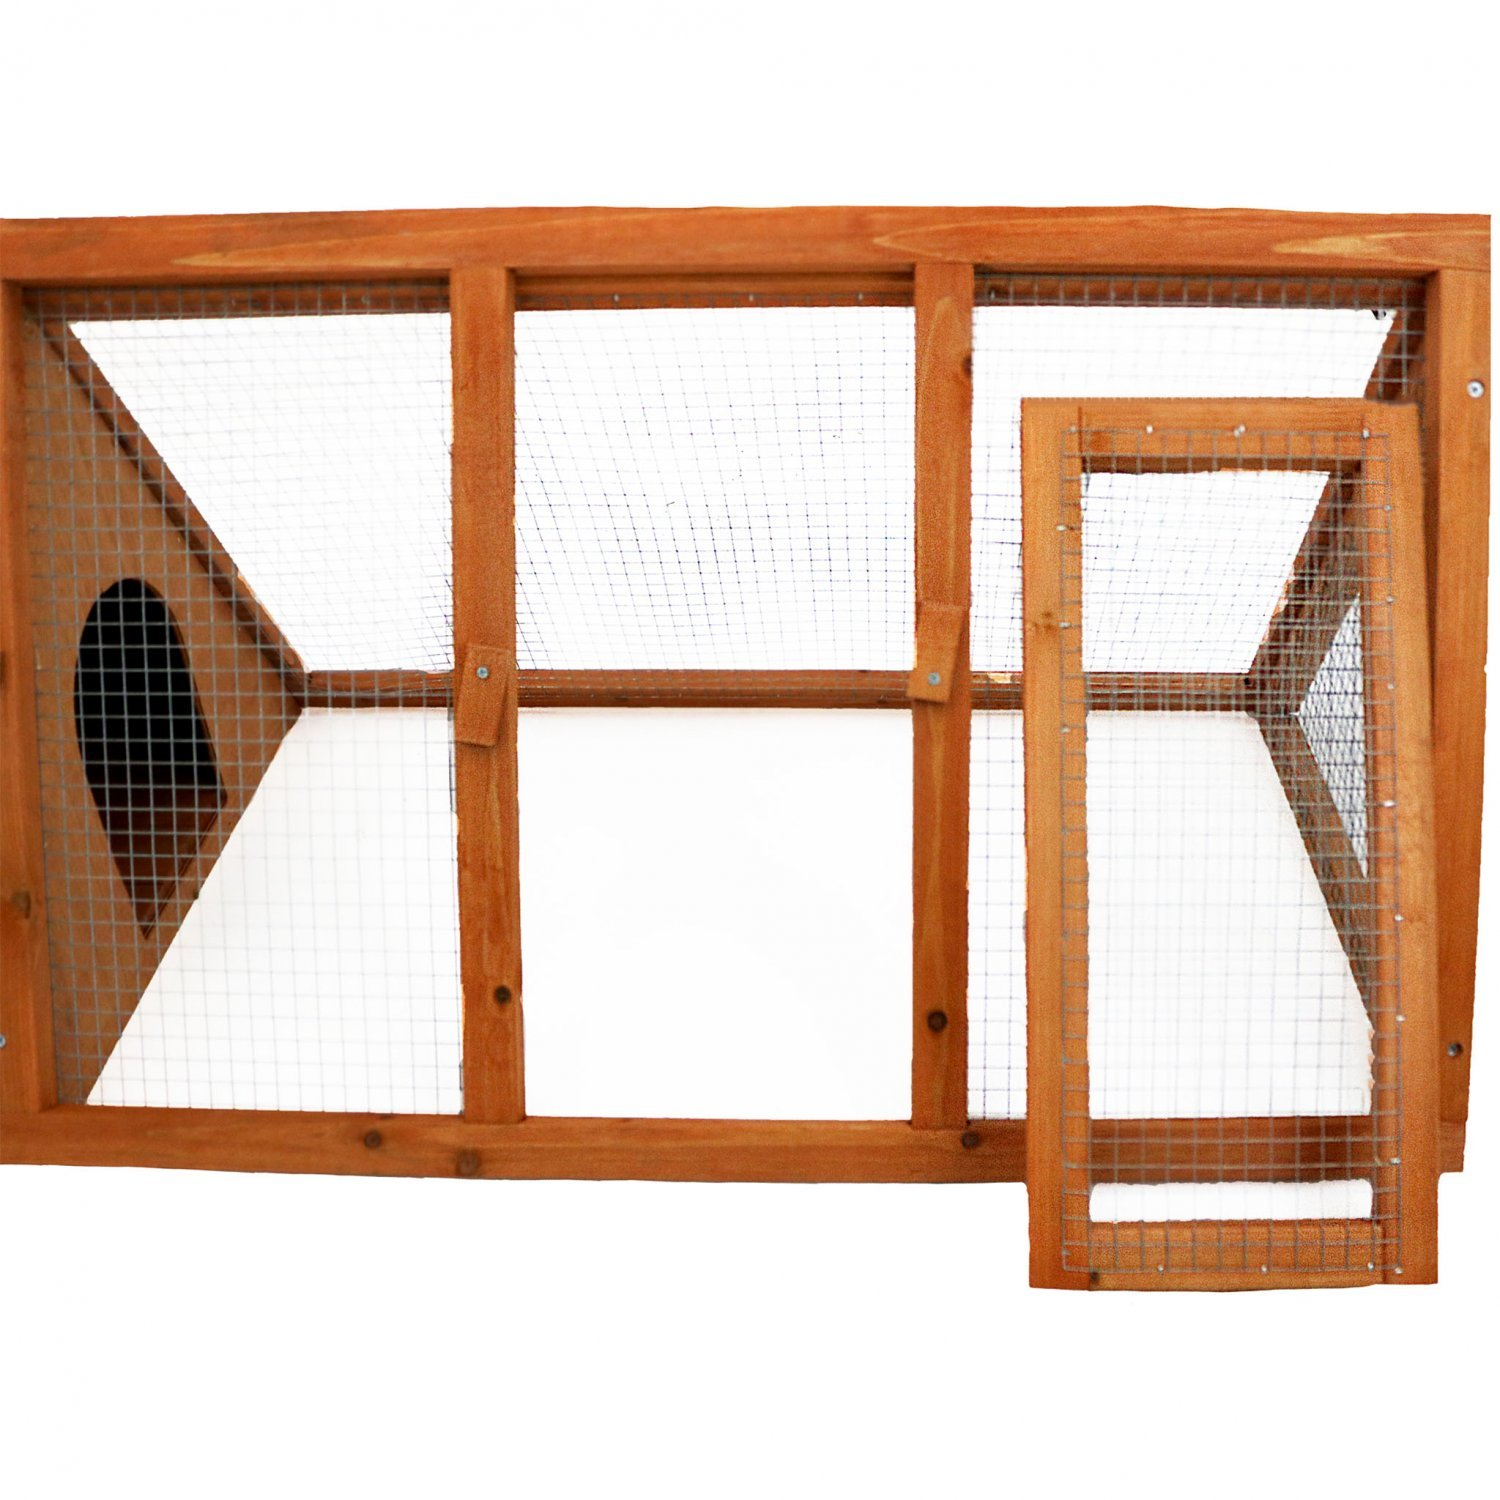 Wooden outdoor triangle rabbit guinea pig pet hutch run for Guinea pig dresser cage